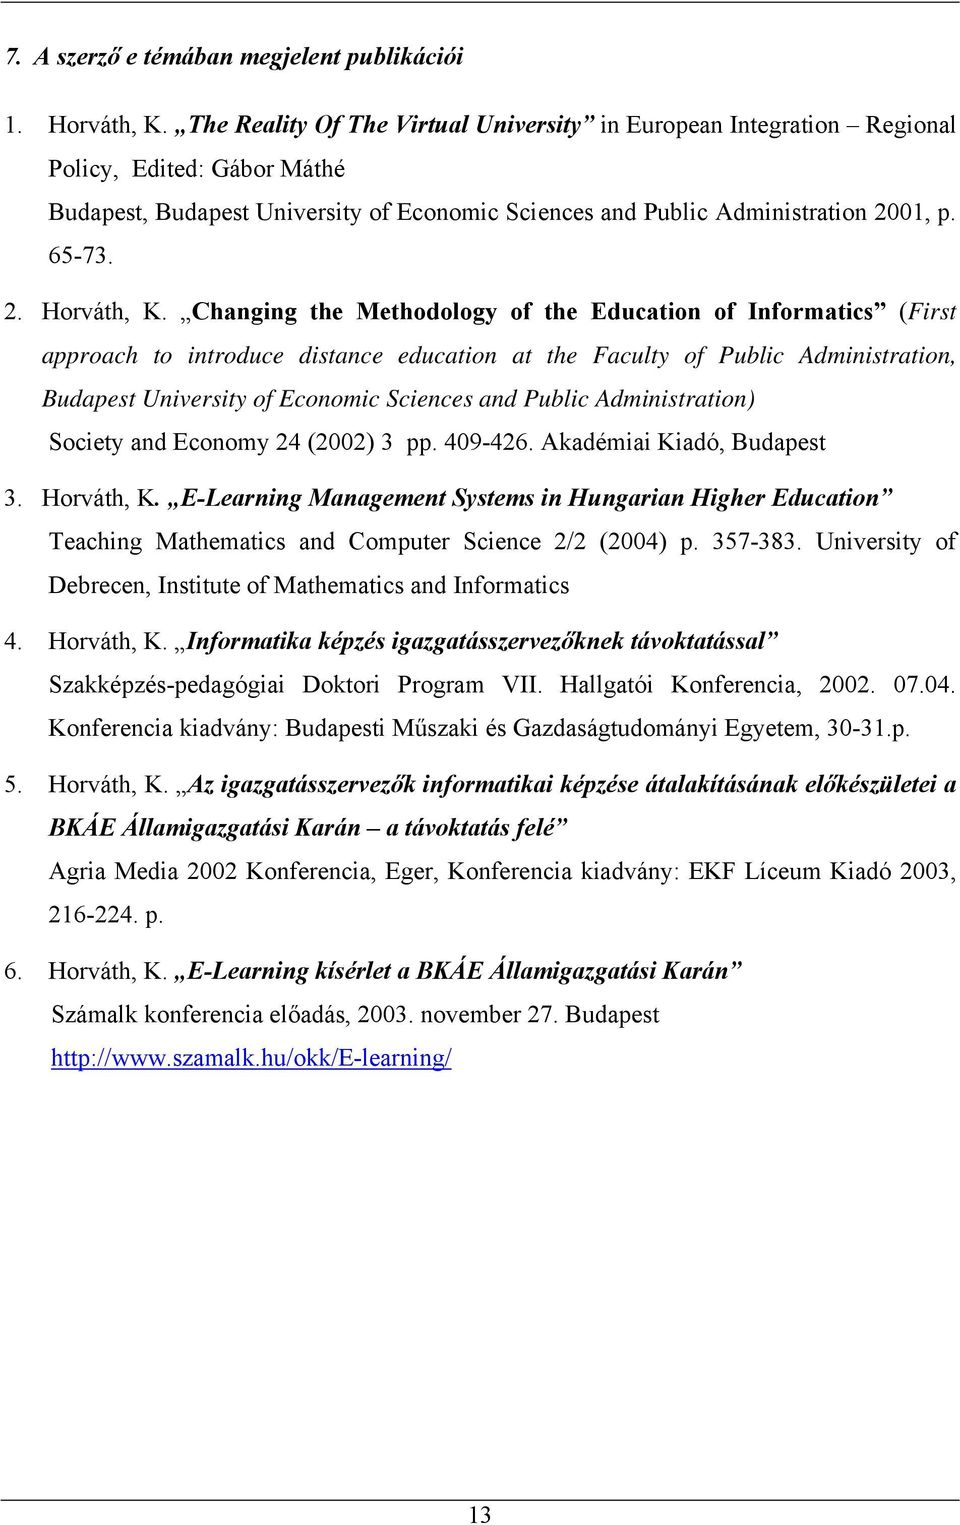 Changing the Methodology of the Education of Informatics (First approach to introduce distance education at the Faculty of Public Administration, Budapest University of Economic Sciences and Public